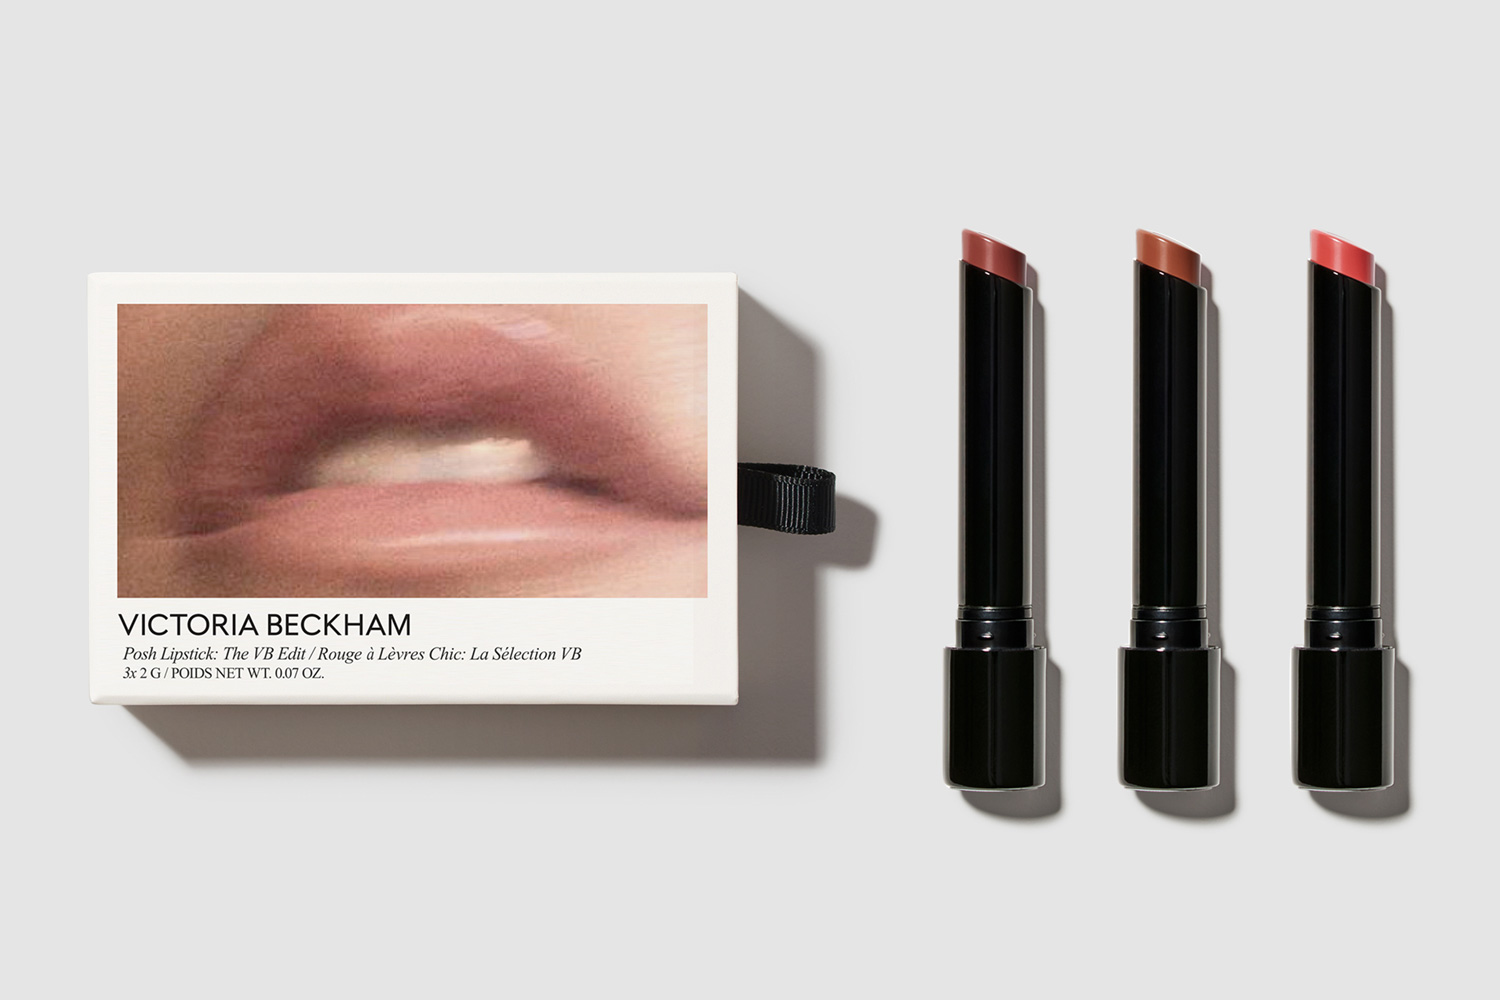 Packaging Beauty Cosmetics Makeup Retail Luxury Recyclable Environmentally Friendly Brand Creative Manufacture Production Victoria Beckham Progress 09